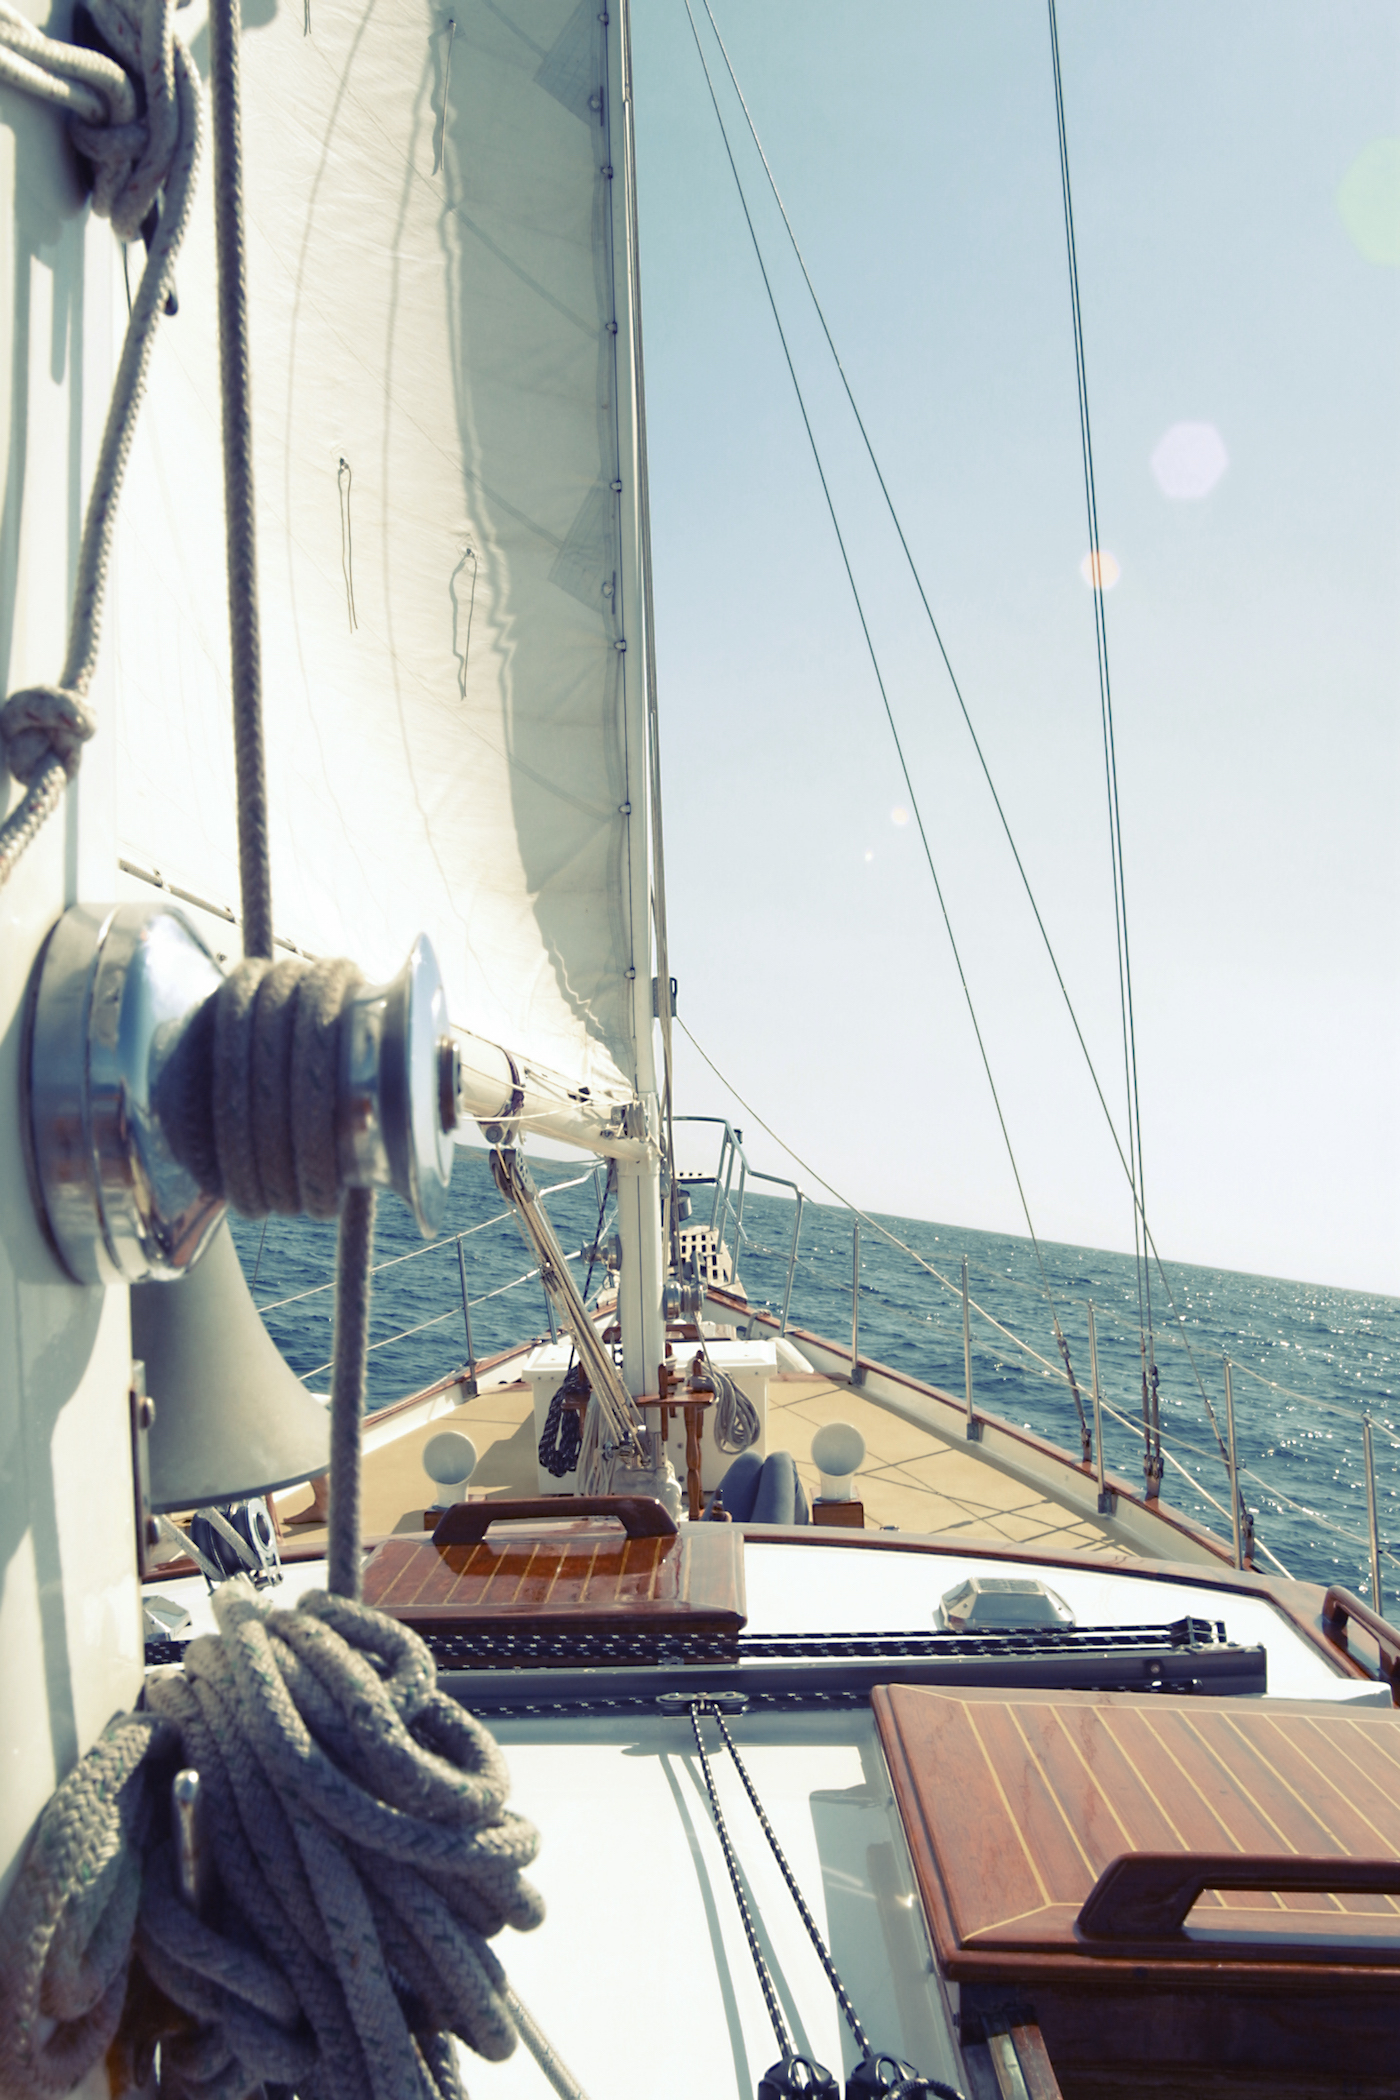 2014-05-Life-of-Pix-free-stock-photo-water-sail-boat2